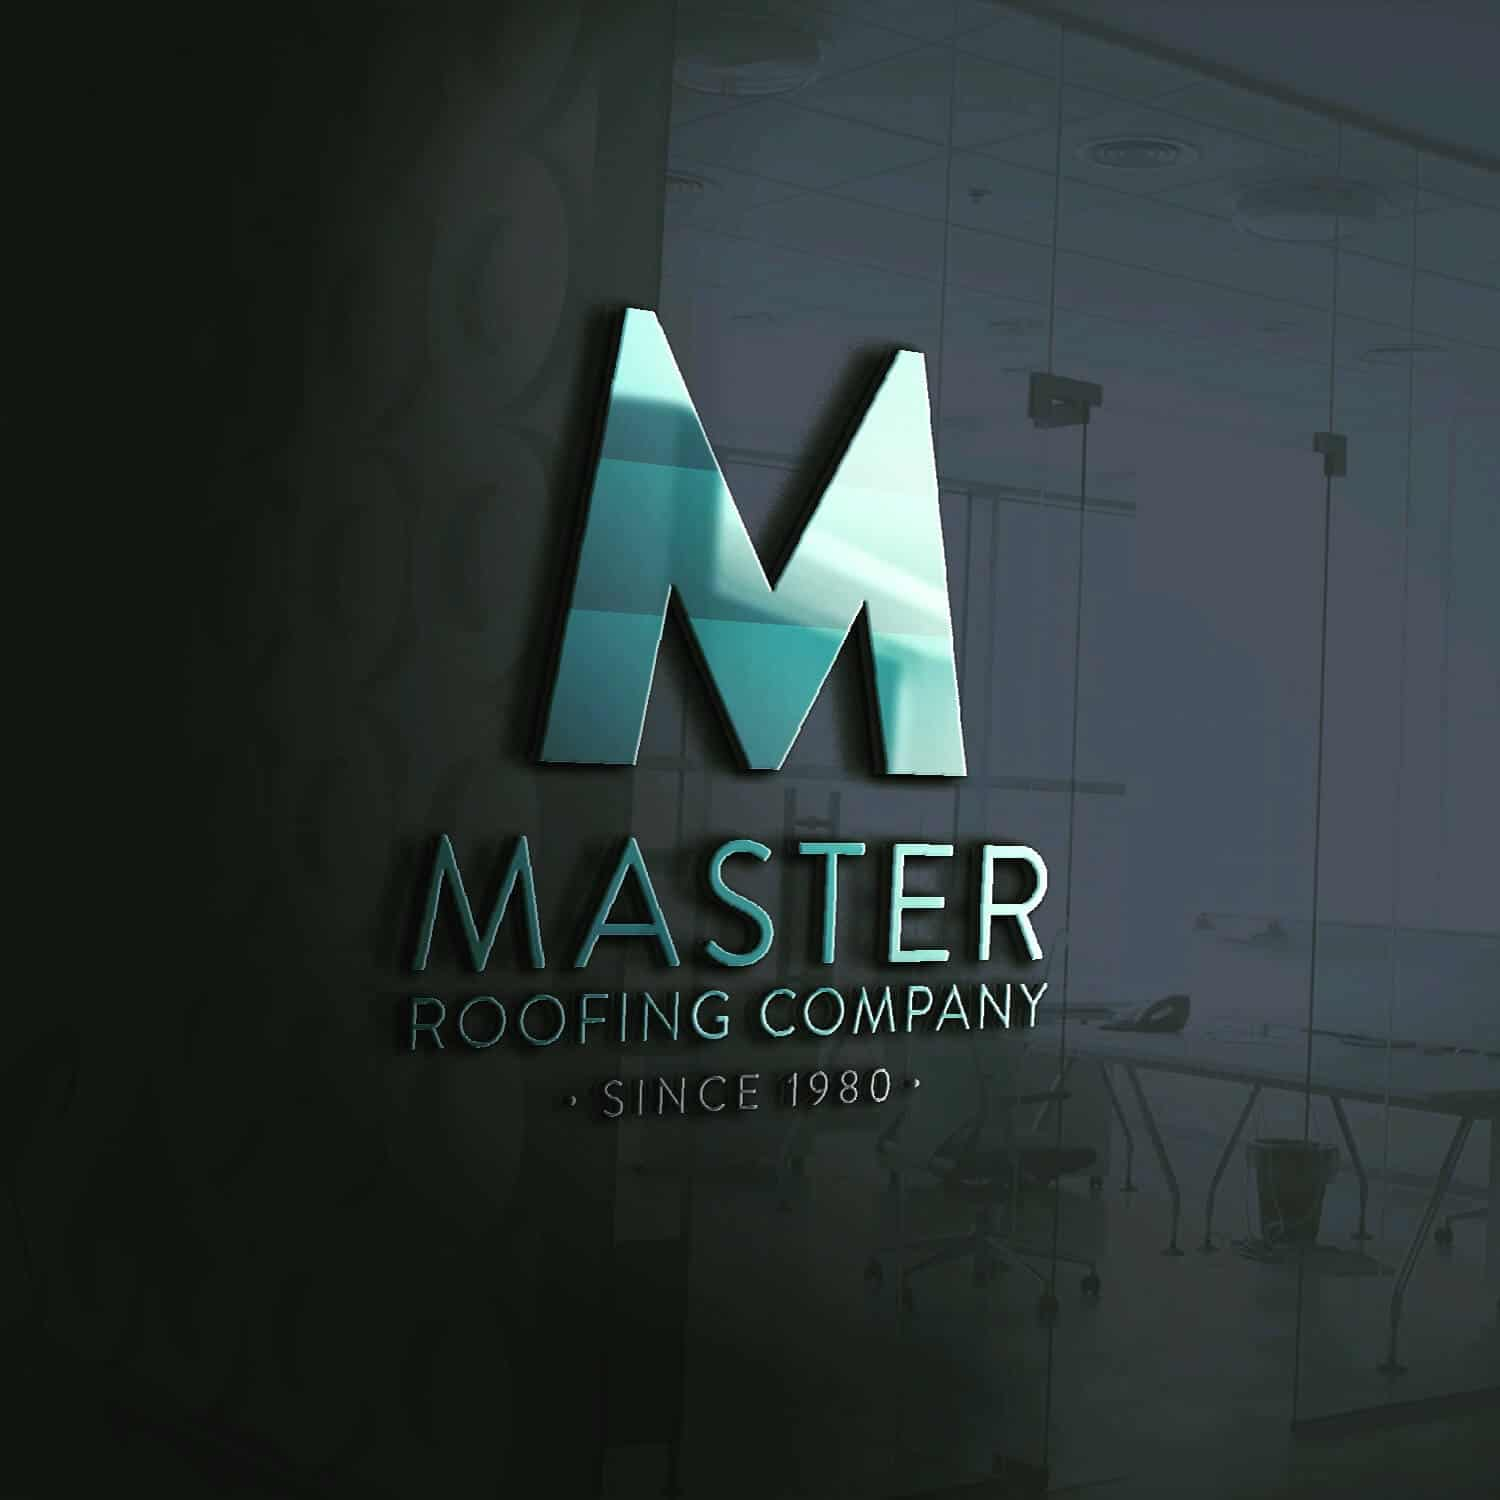 Master Roofing Company – Logo Design